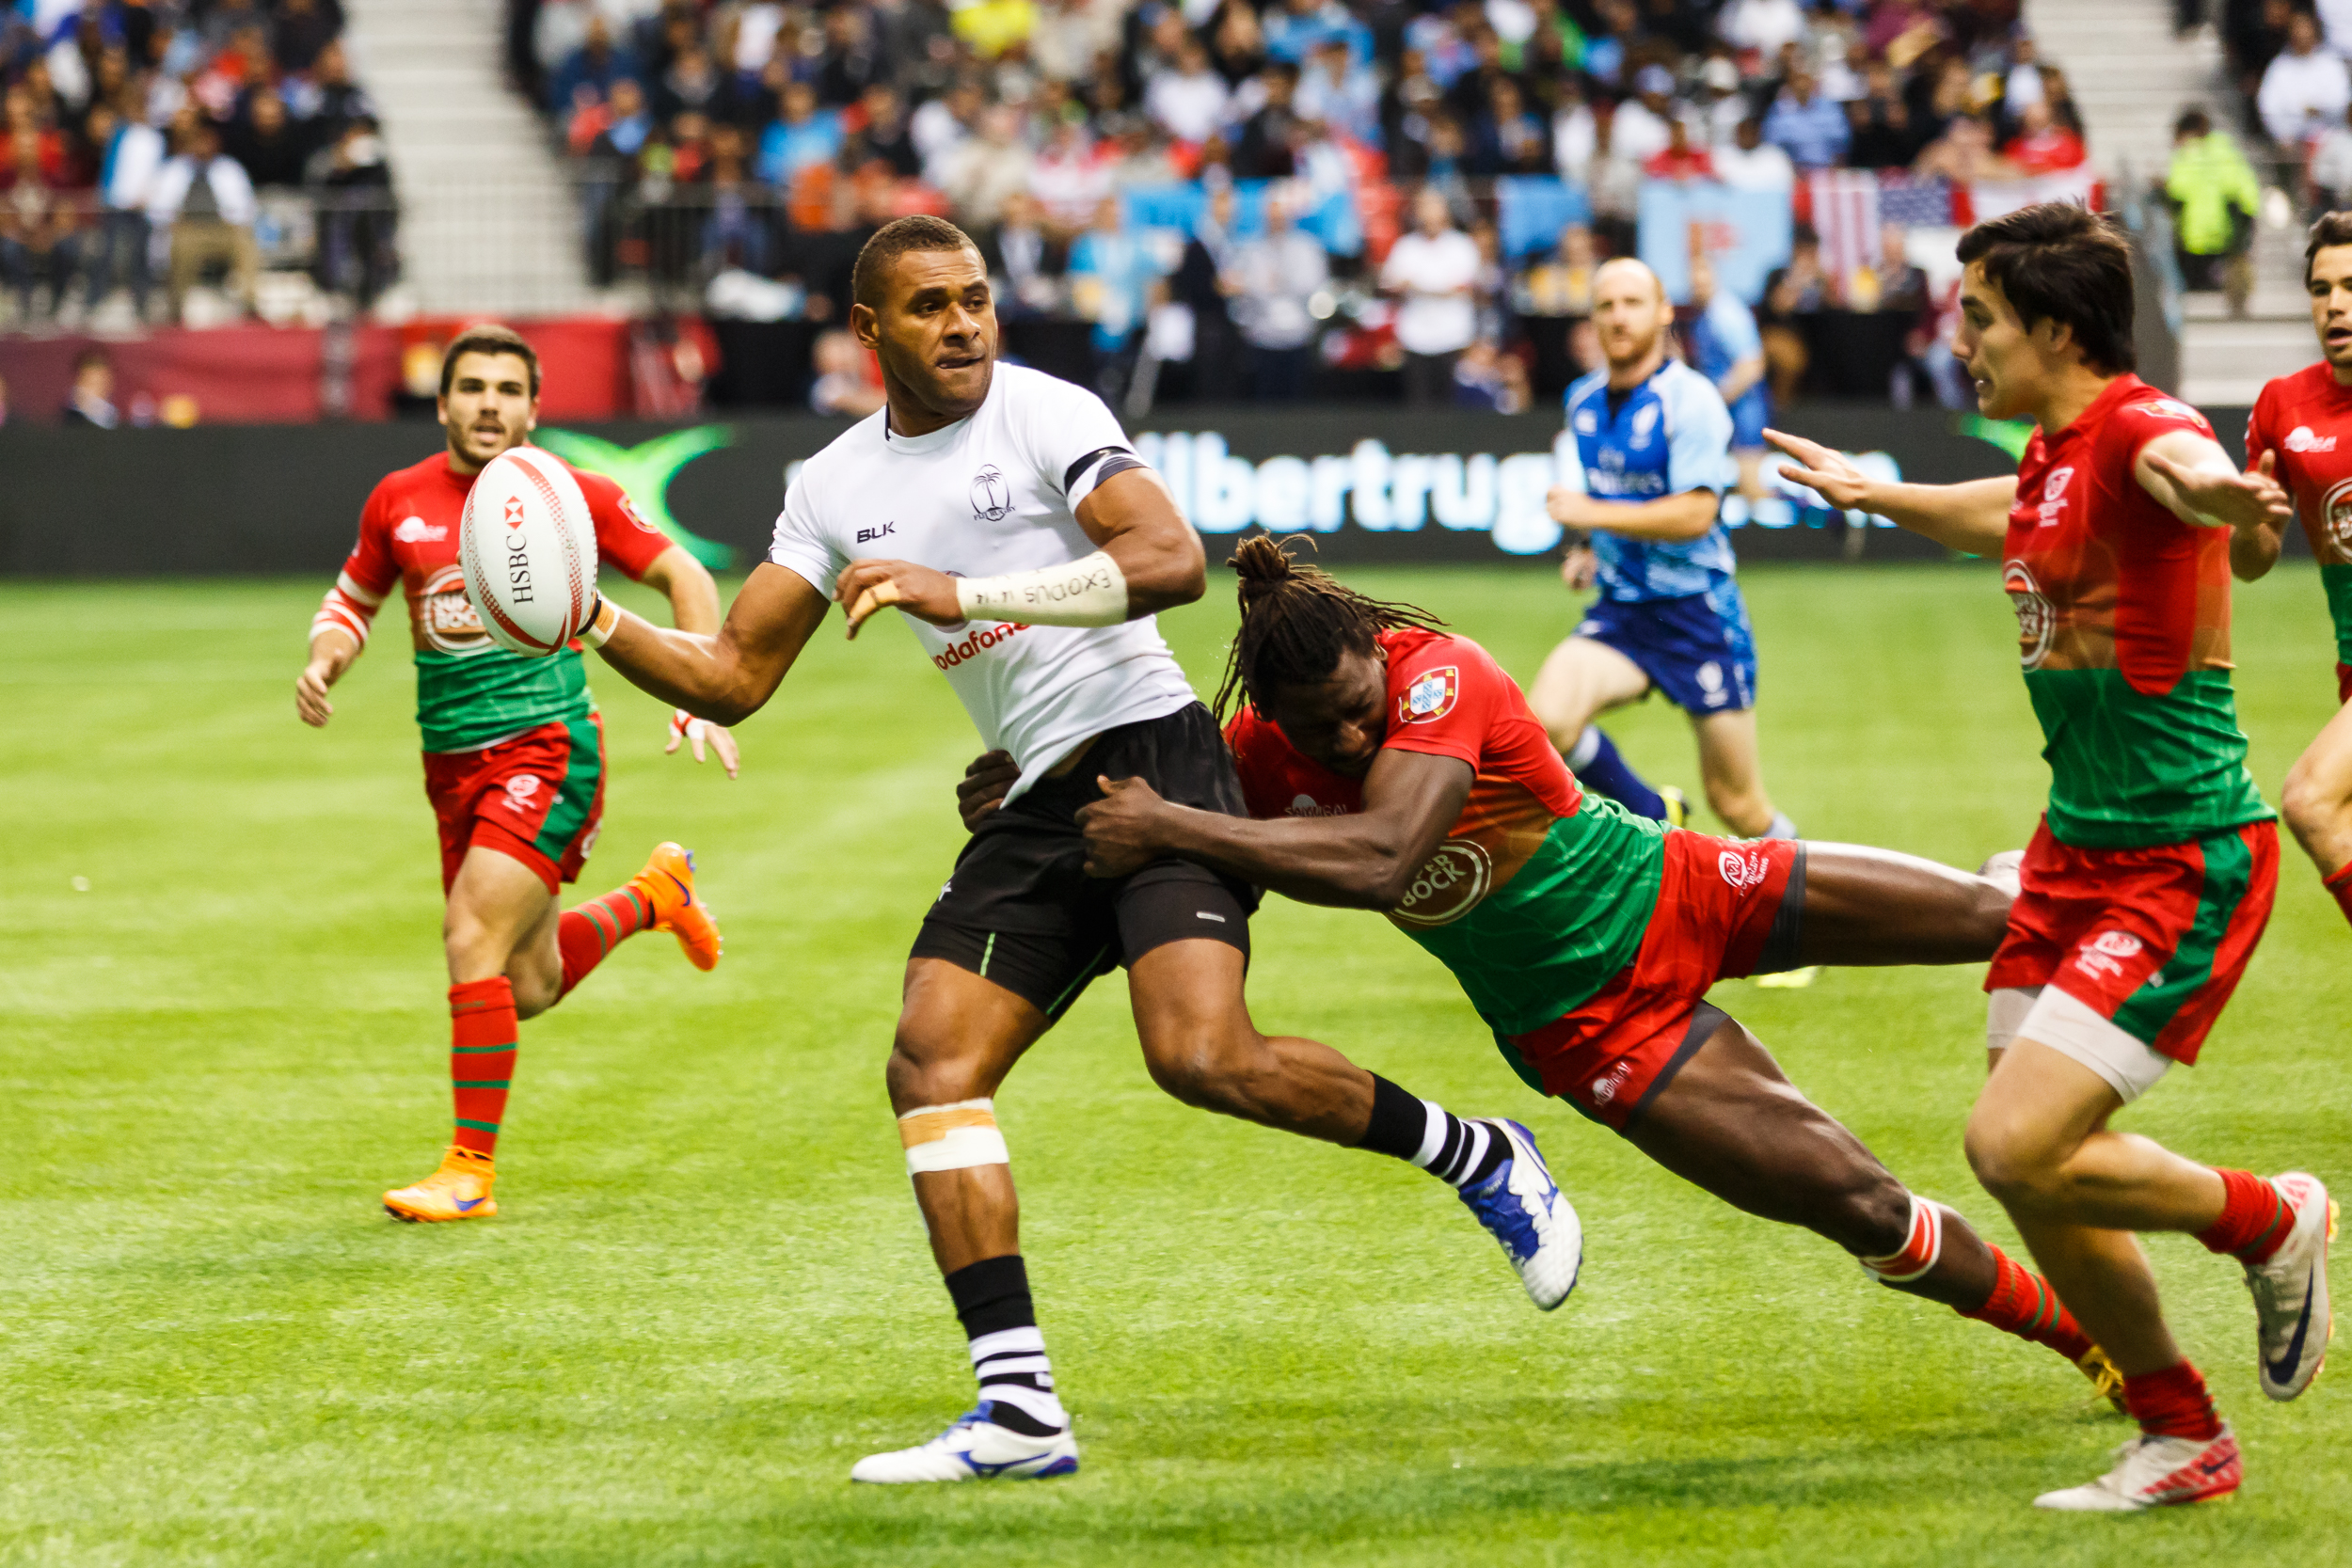 Canada-Rugby-Sevens-photo-13.jpg